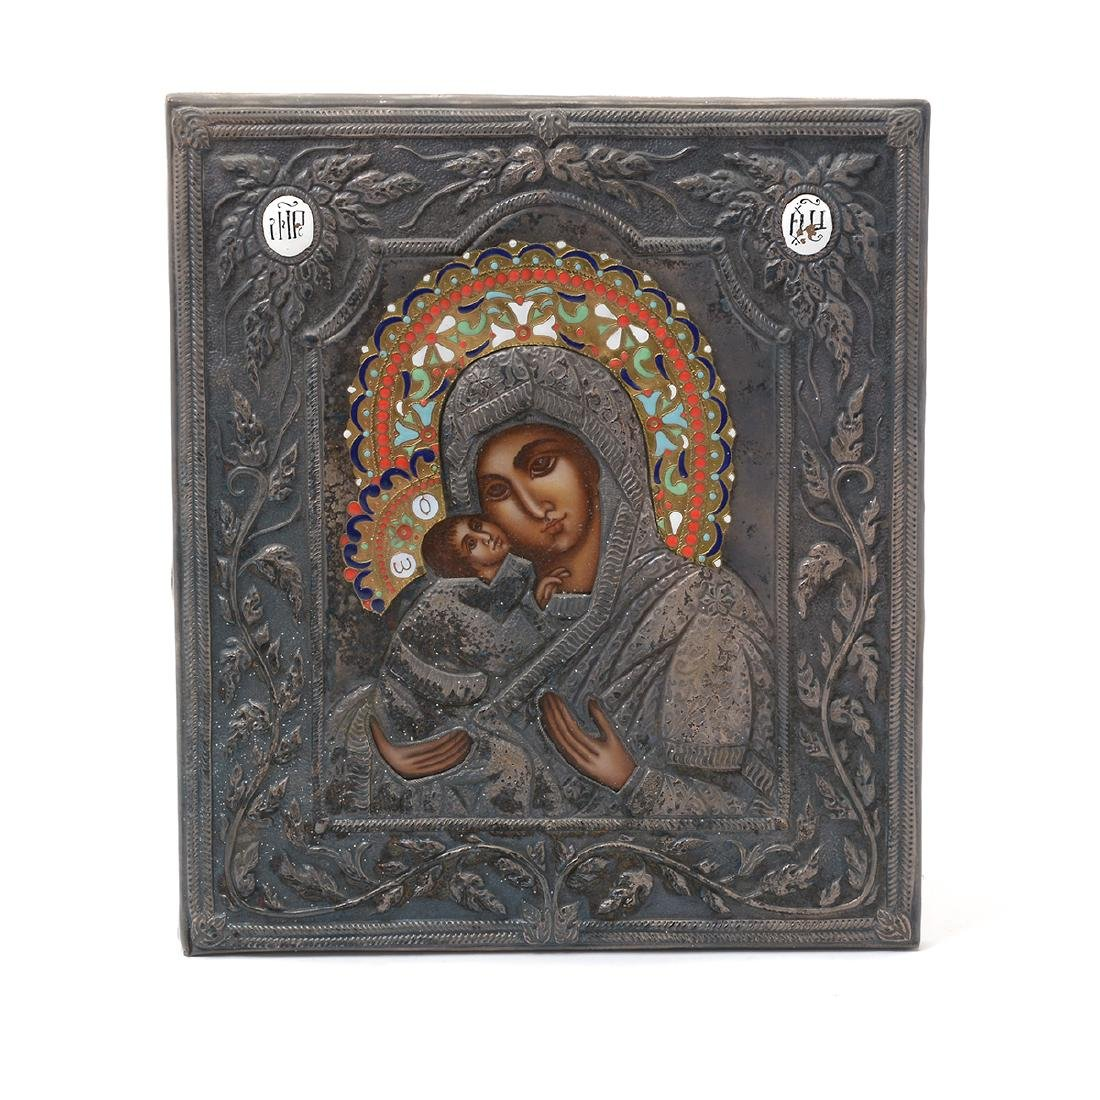 Russian Cloisonne Enamel and Silver Oklad Icon with